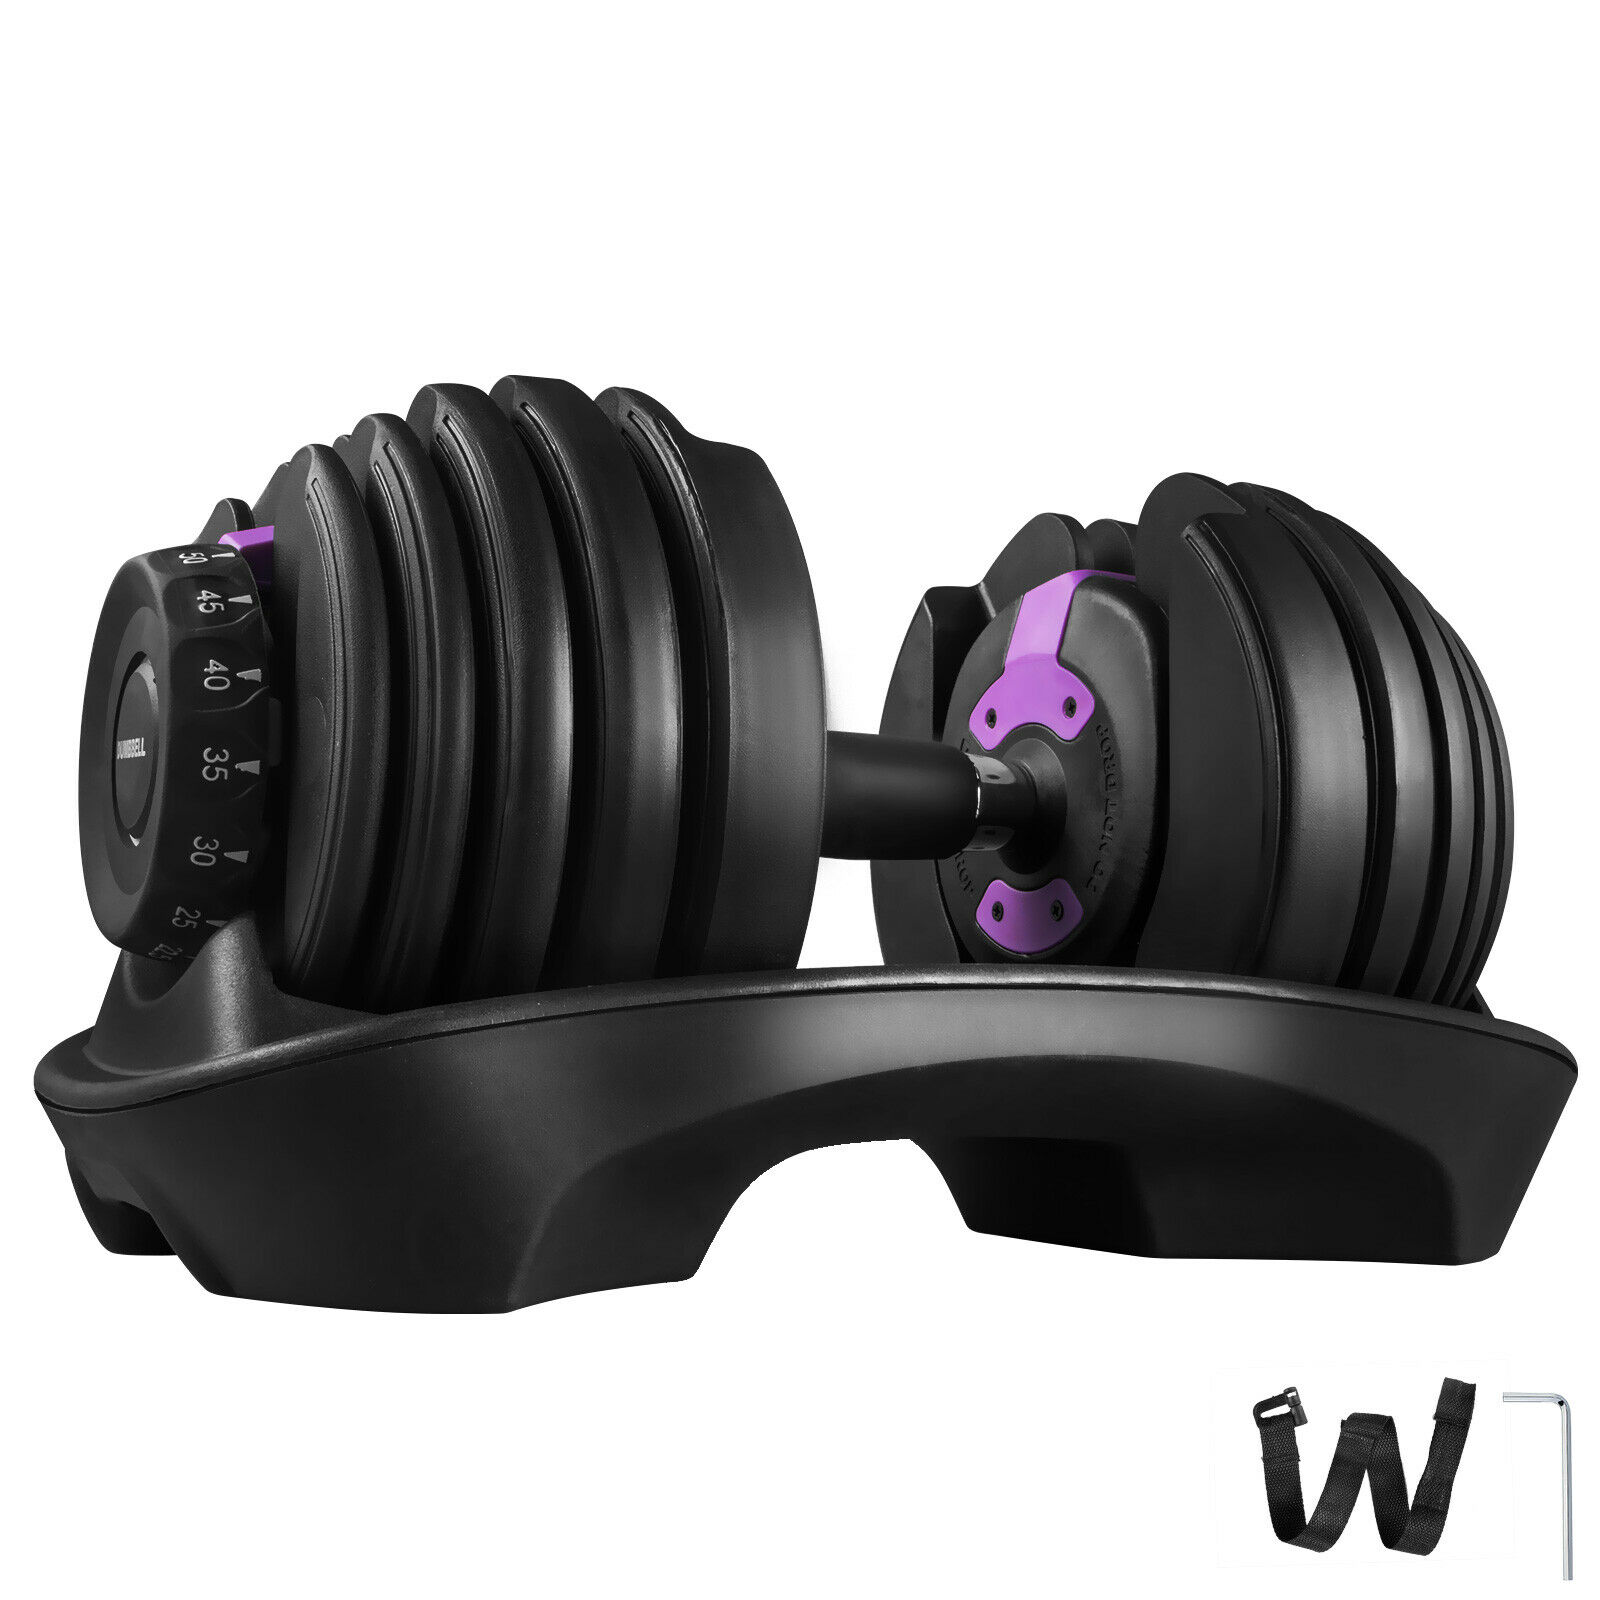 Adjustable Dumbbell Series Fitness 1pcs Purple 52.5lbs Dumbbell Standard Adjustable Dumbbell With Handle And Weight Plate